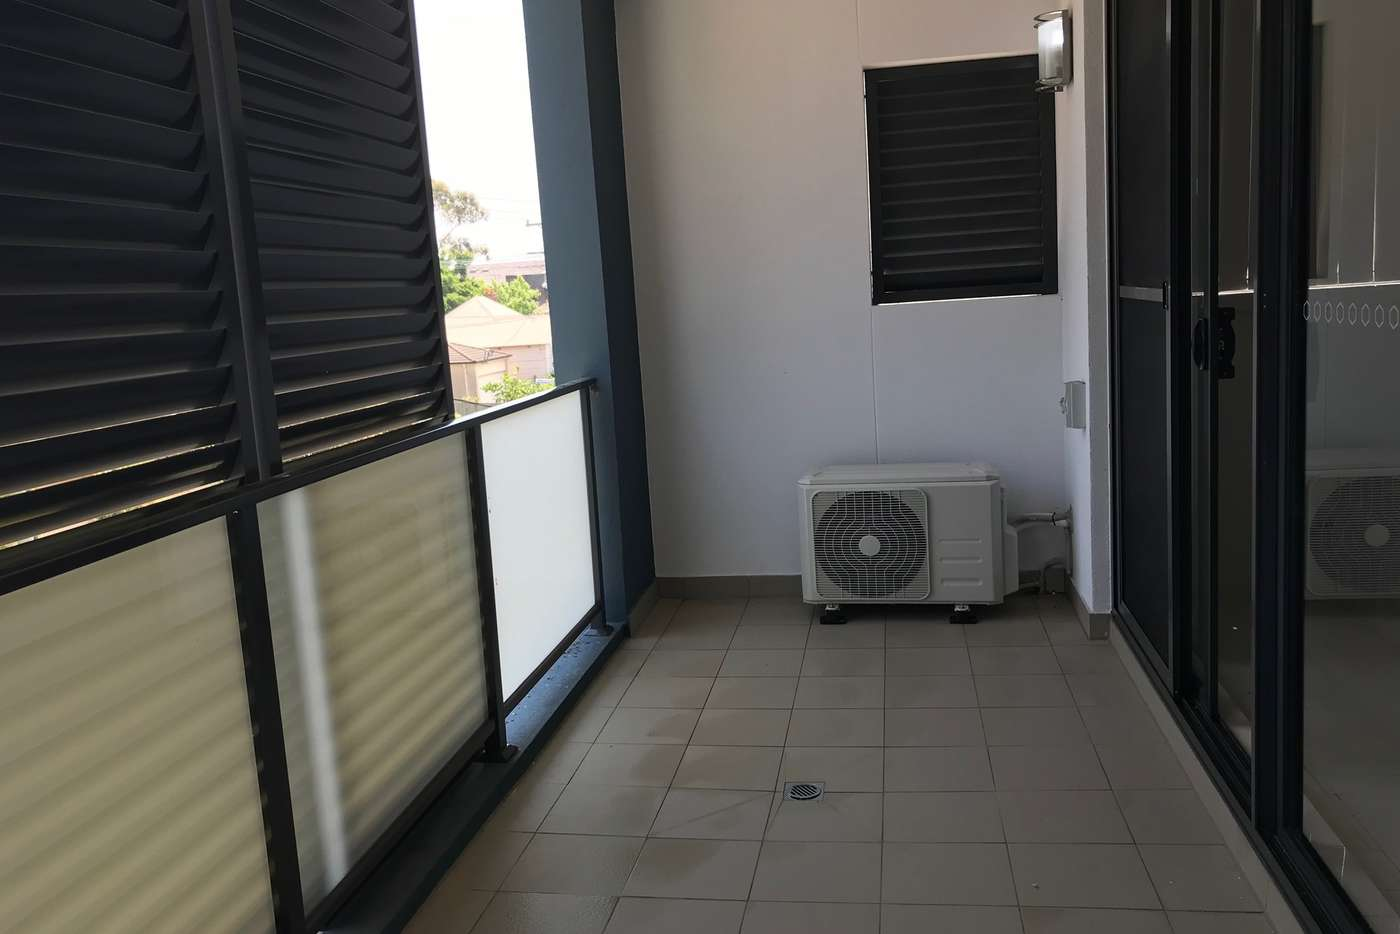 Sixth view of Homely apartment listing, 64 Cross Street, Guildford NSW 2161